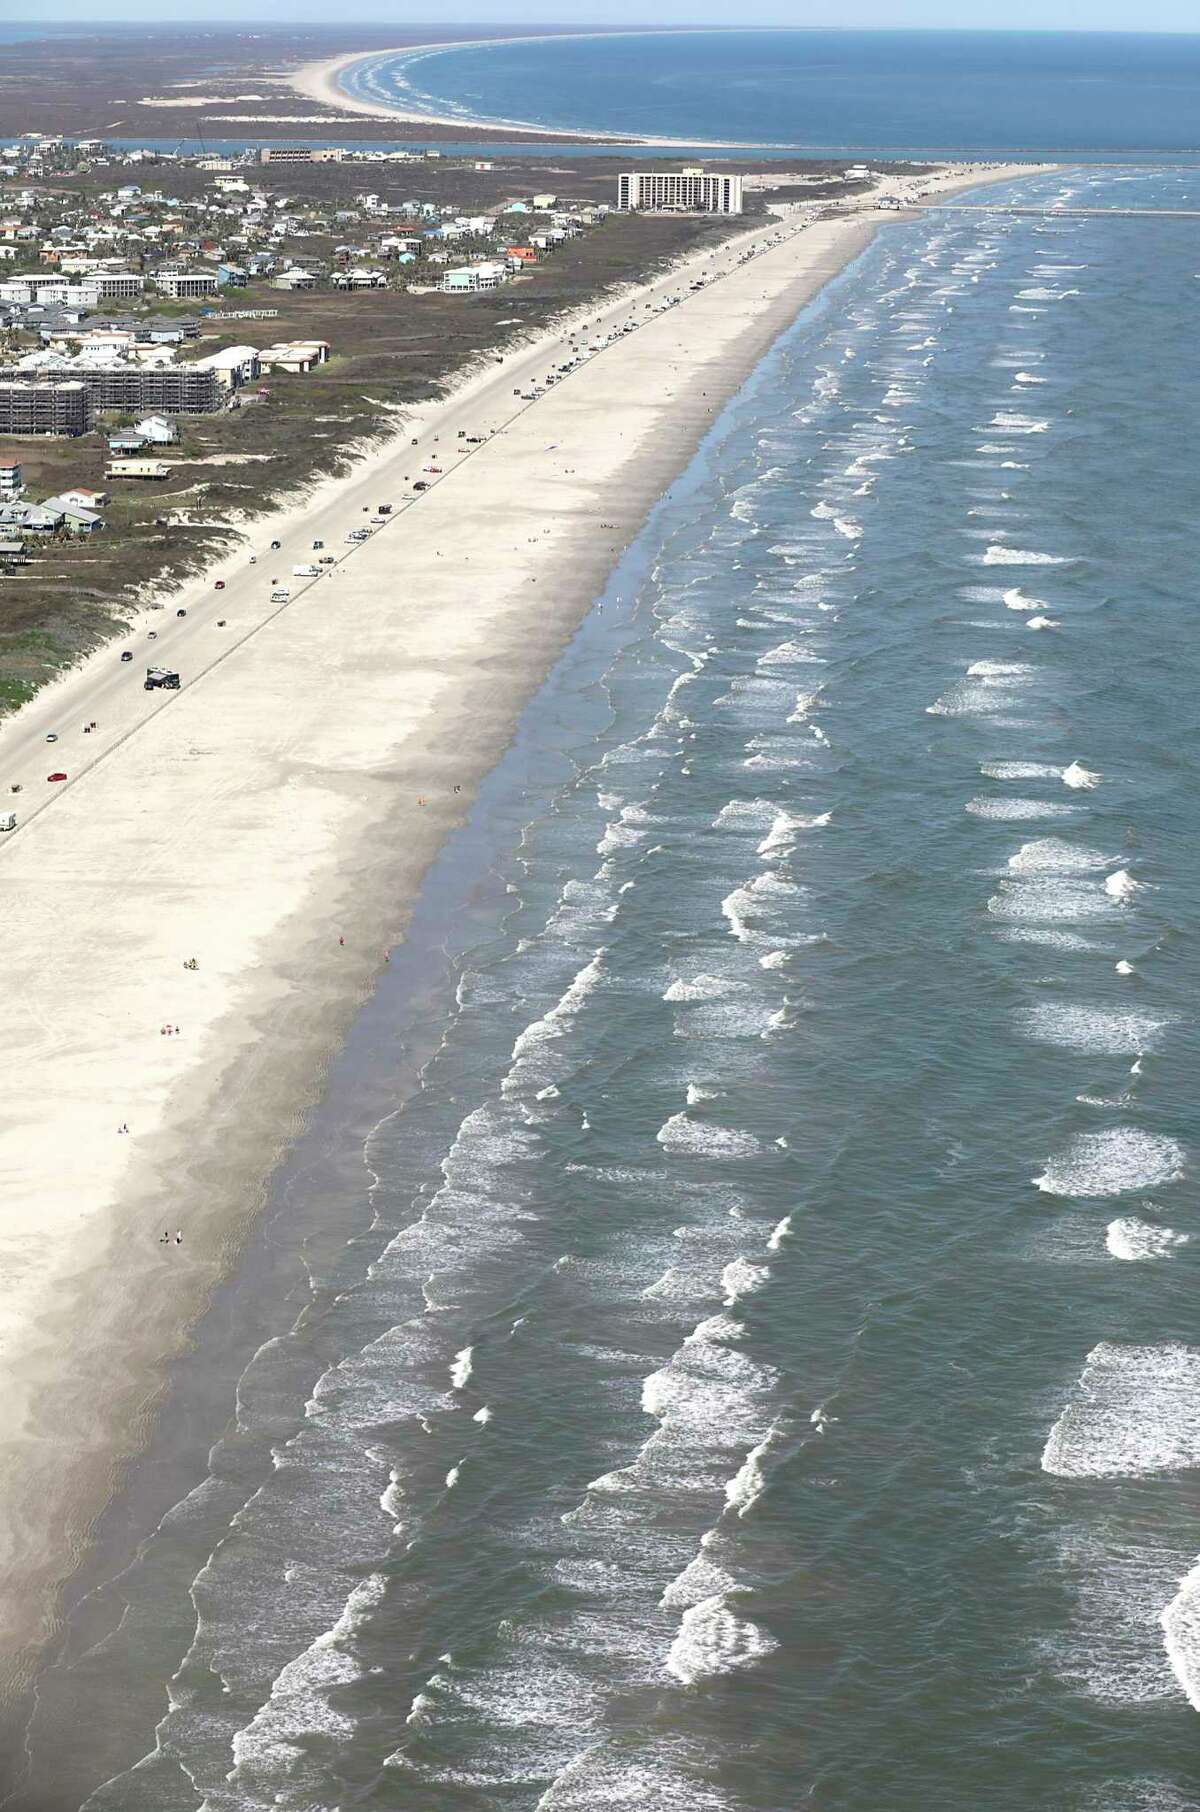 PORT ARANSAS: Vehicular access to the beach will be restricted from July 16 to Aug. 1, Nueces County officials announced in a news release Wednesday.  Pedestrian access to the beach is permitted. There is also a curfew from 8:30 p.m. to 6 a.m.